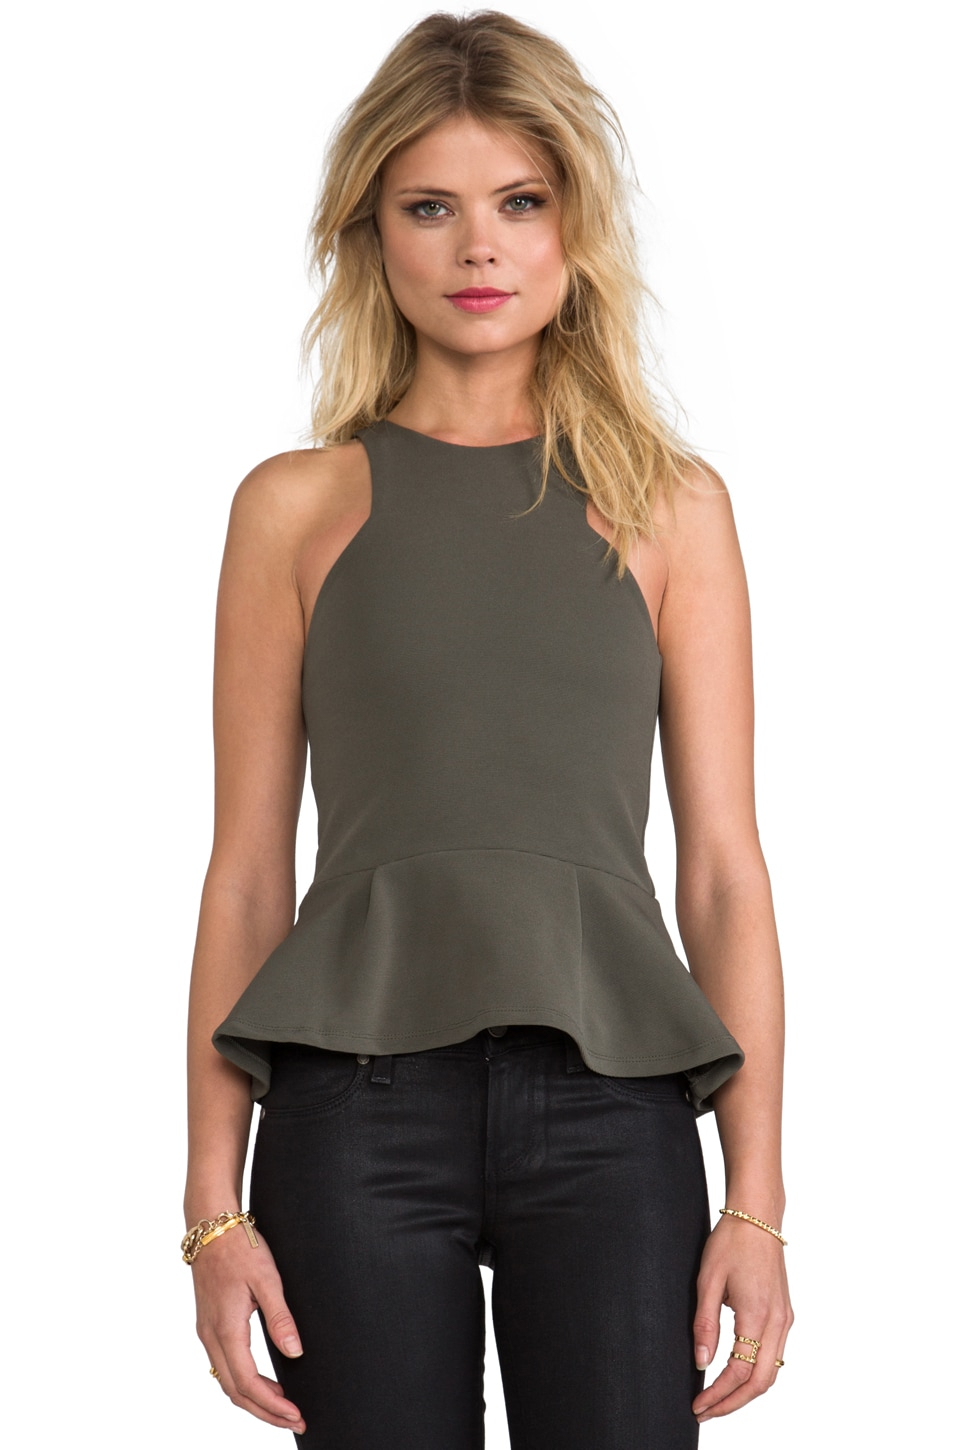 BEC&BRIDGE Imperial Peplum Top in Army